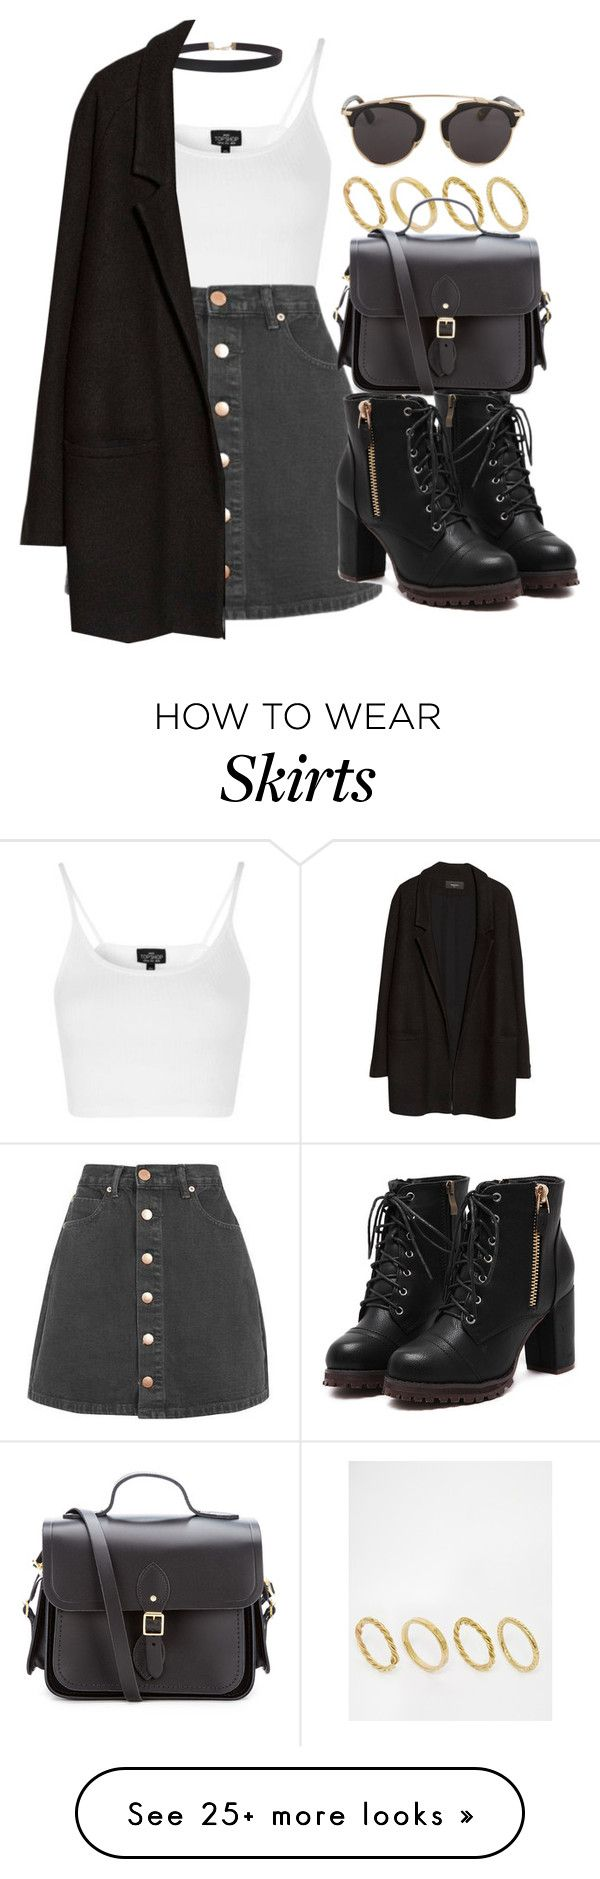 """""""Style #11762"""" by vany-alvarado on Polyvore featuring Topshop, Humble Chic, Glamorous, MANGO, Made, The Cambridge Satchel Company and Christian Dior"""